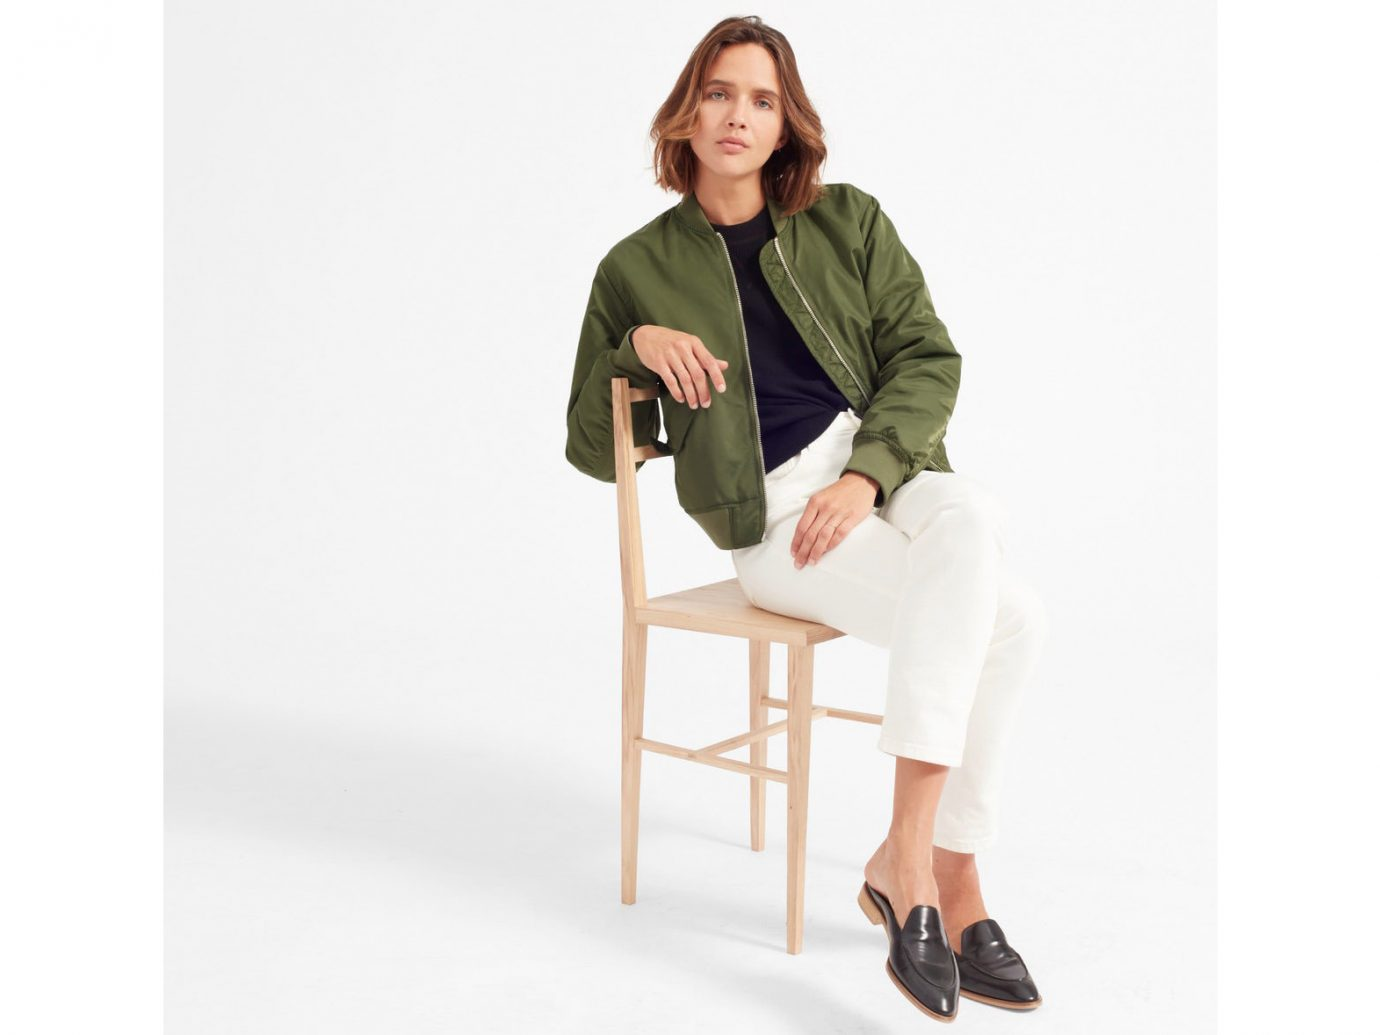 Packing Tips Spring Travel Style + Design Travel Shop person sitting standing shoulder furniture outerwear product design jacket sleeve neck coat posing